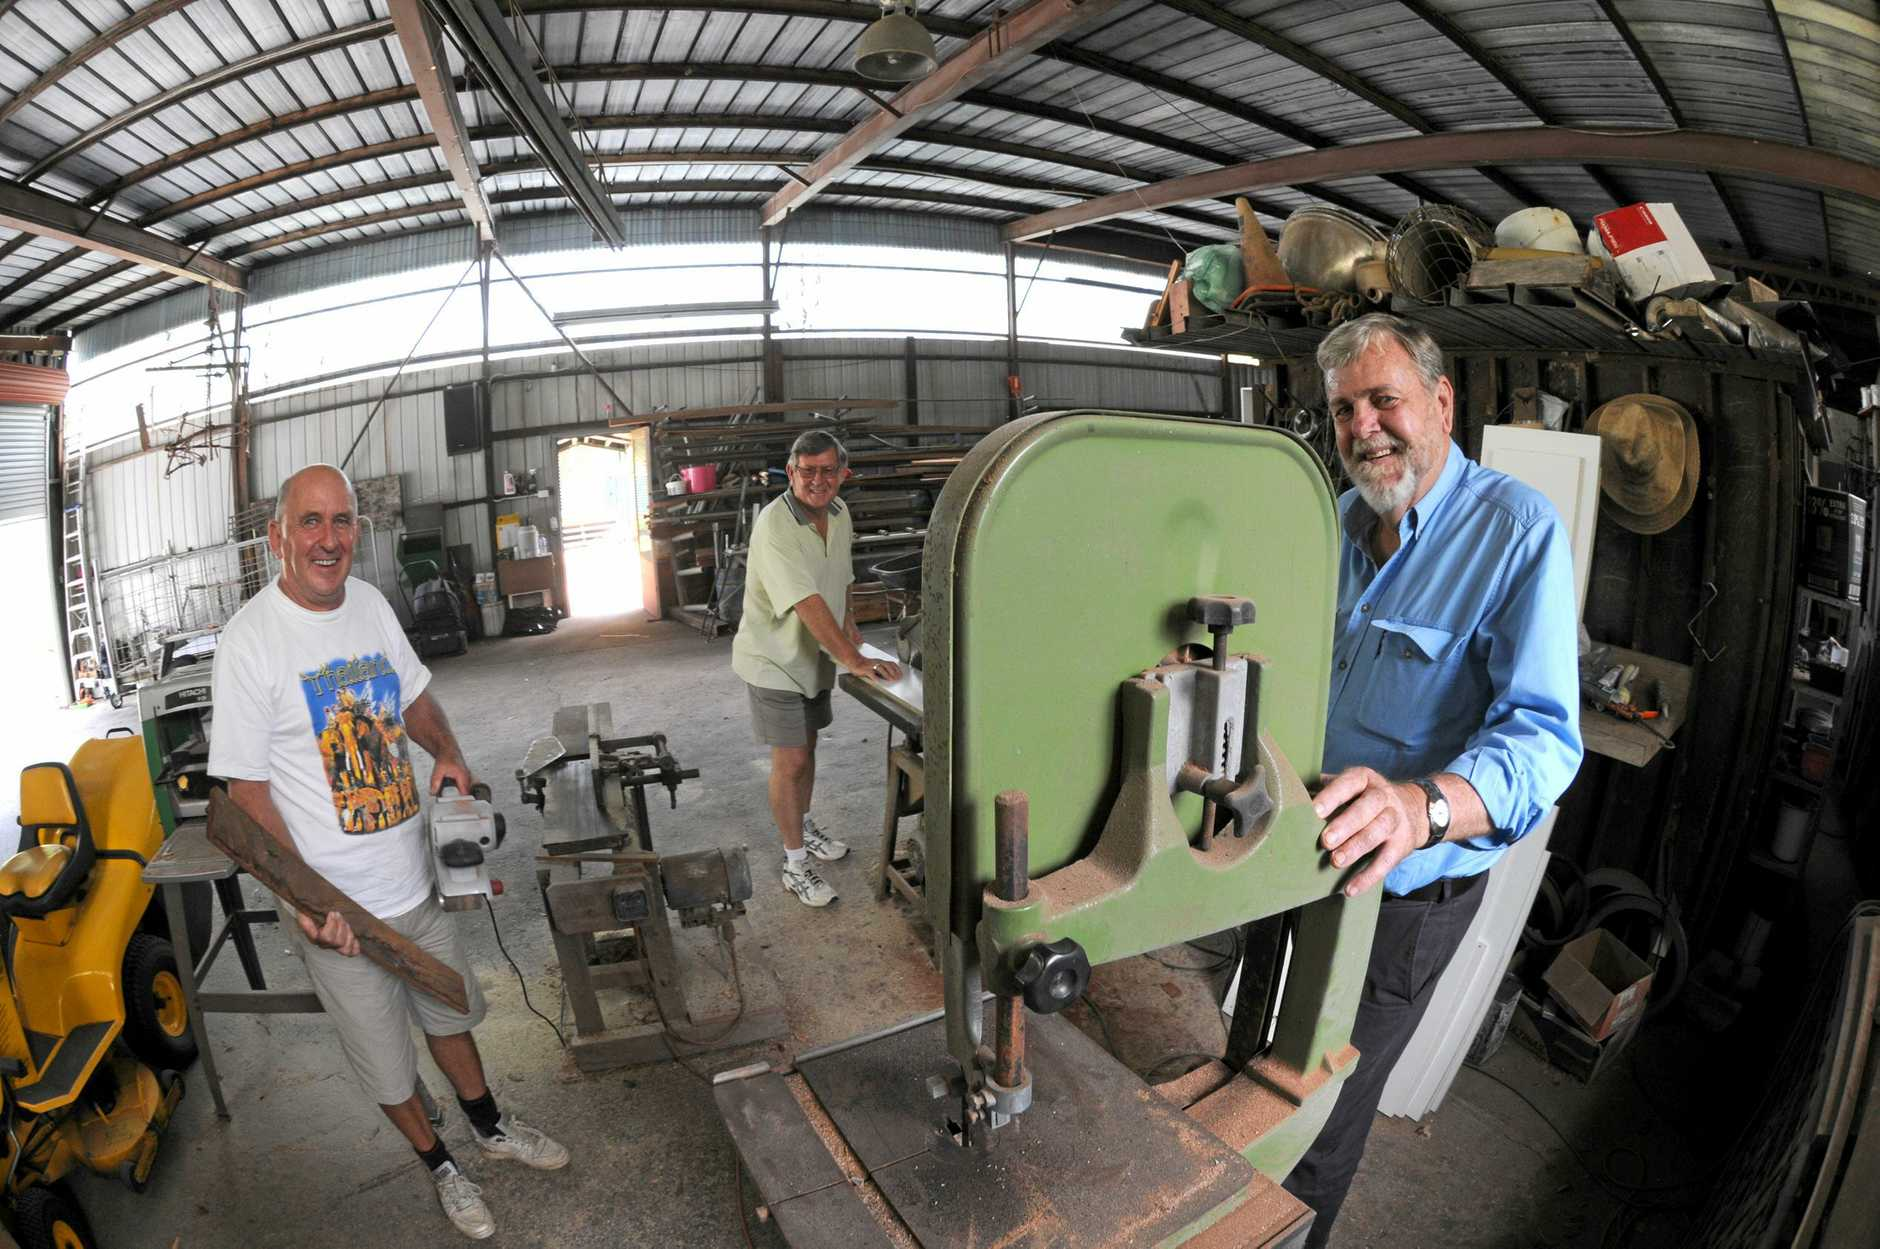 FLASHBACK TO 2011: When the Rotary Club of Buderim was looking to start a Men's Shed to give retirees a place to spend time and get involved in hobbies. (From left) Rotary members, Ken Grant, Ray Mazoletti and Rick Beasley.